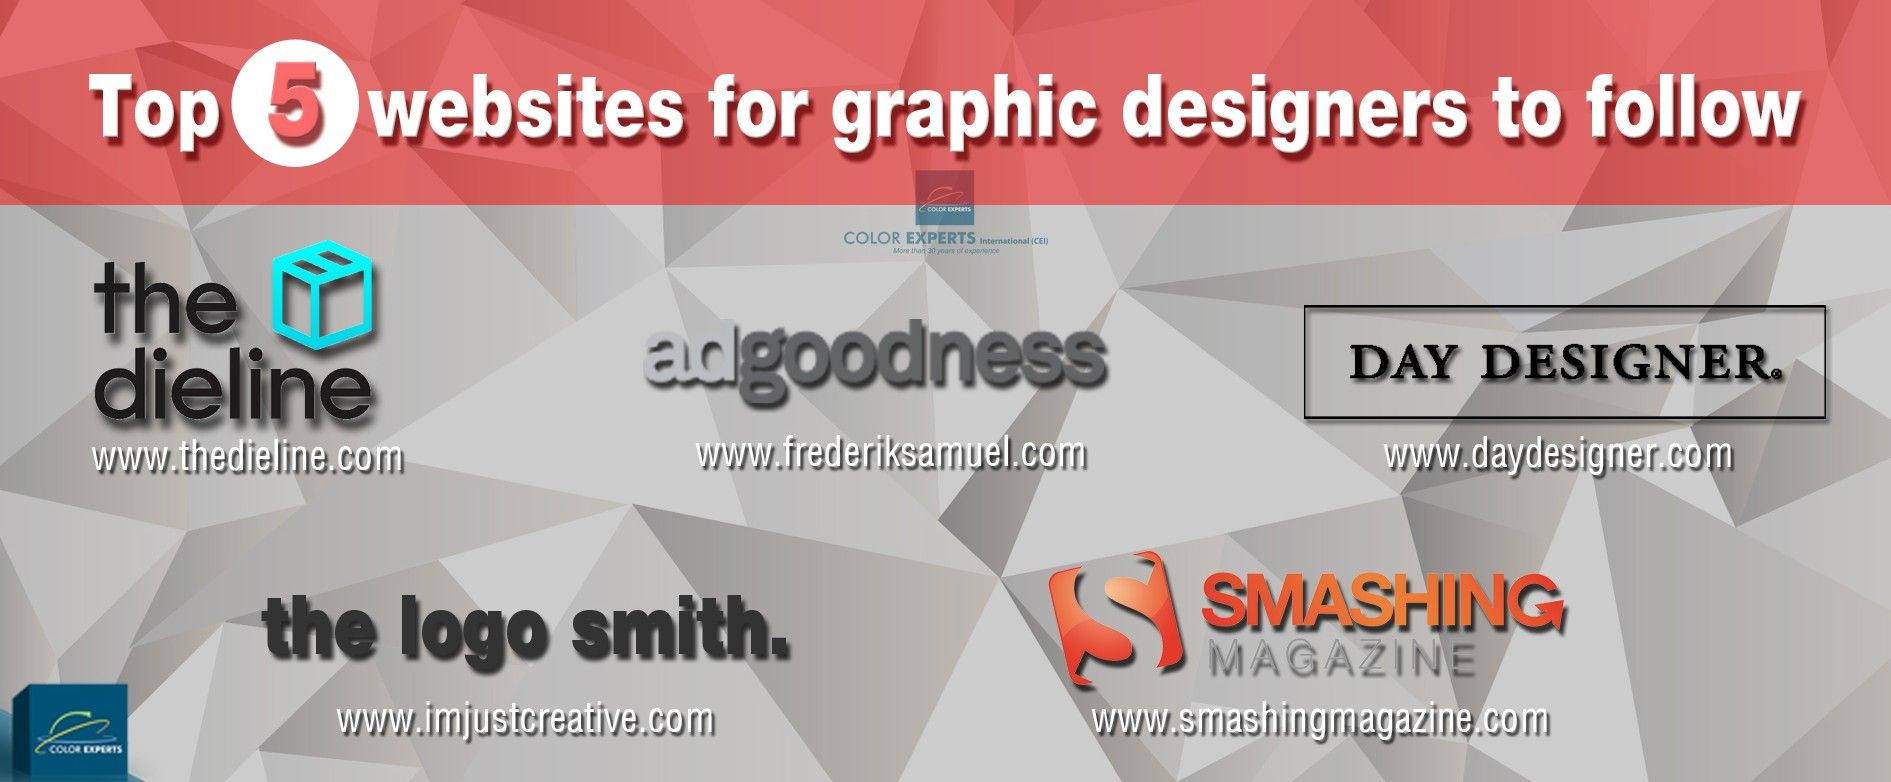 Top 10 Websites For Graphic Designers To Follow Graphic Design Graphic Web Design